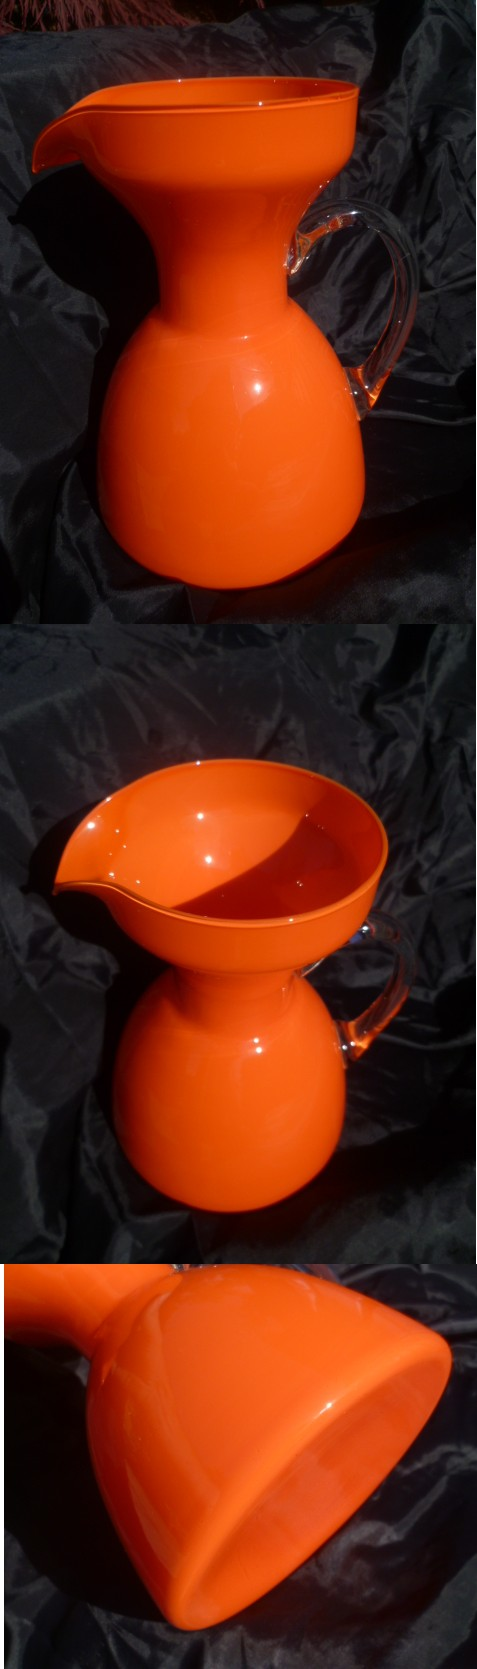 Large 8.5'' Jug Pitcher Orange with clear handle Italian or Scandinavian? Apitch11